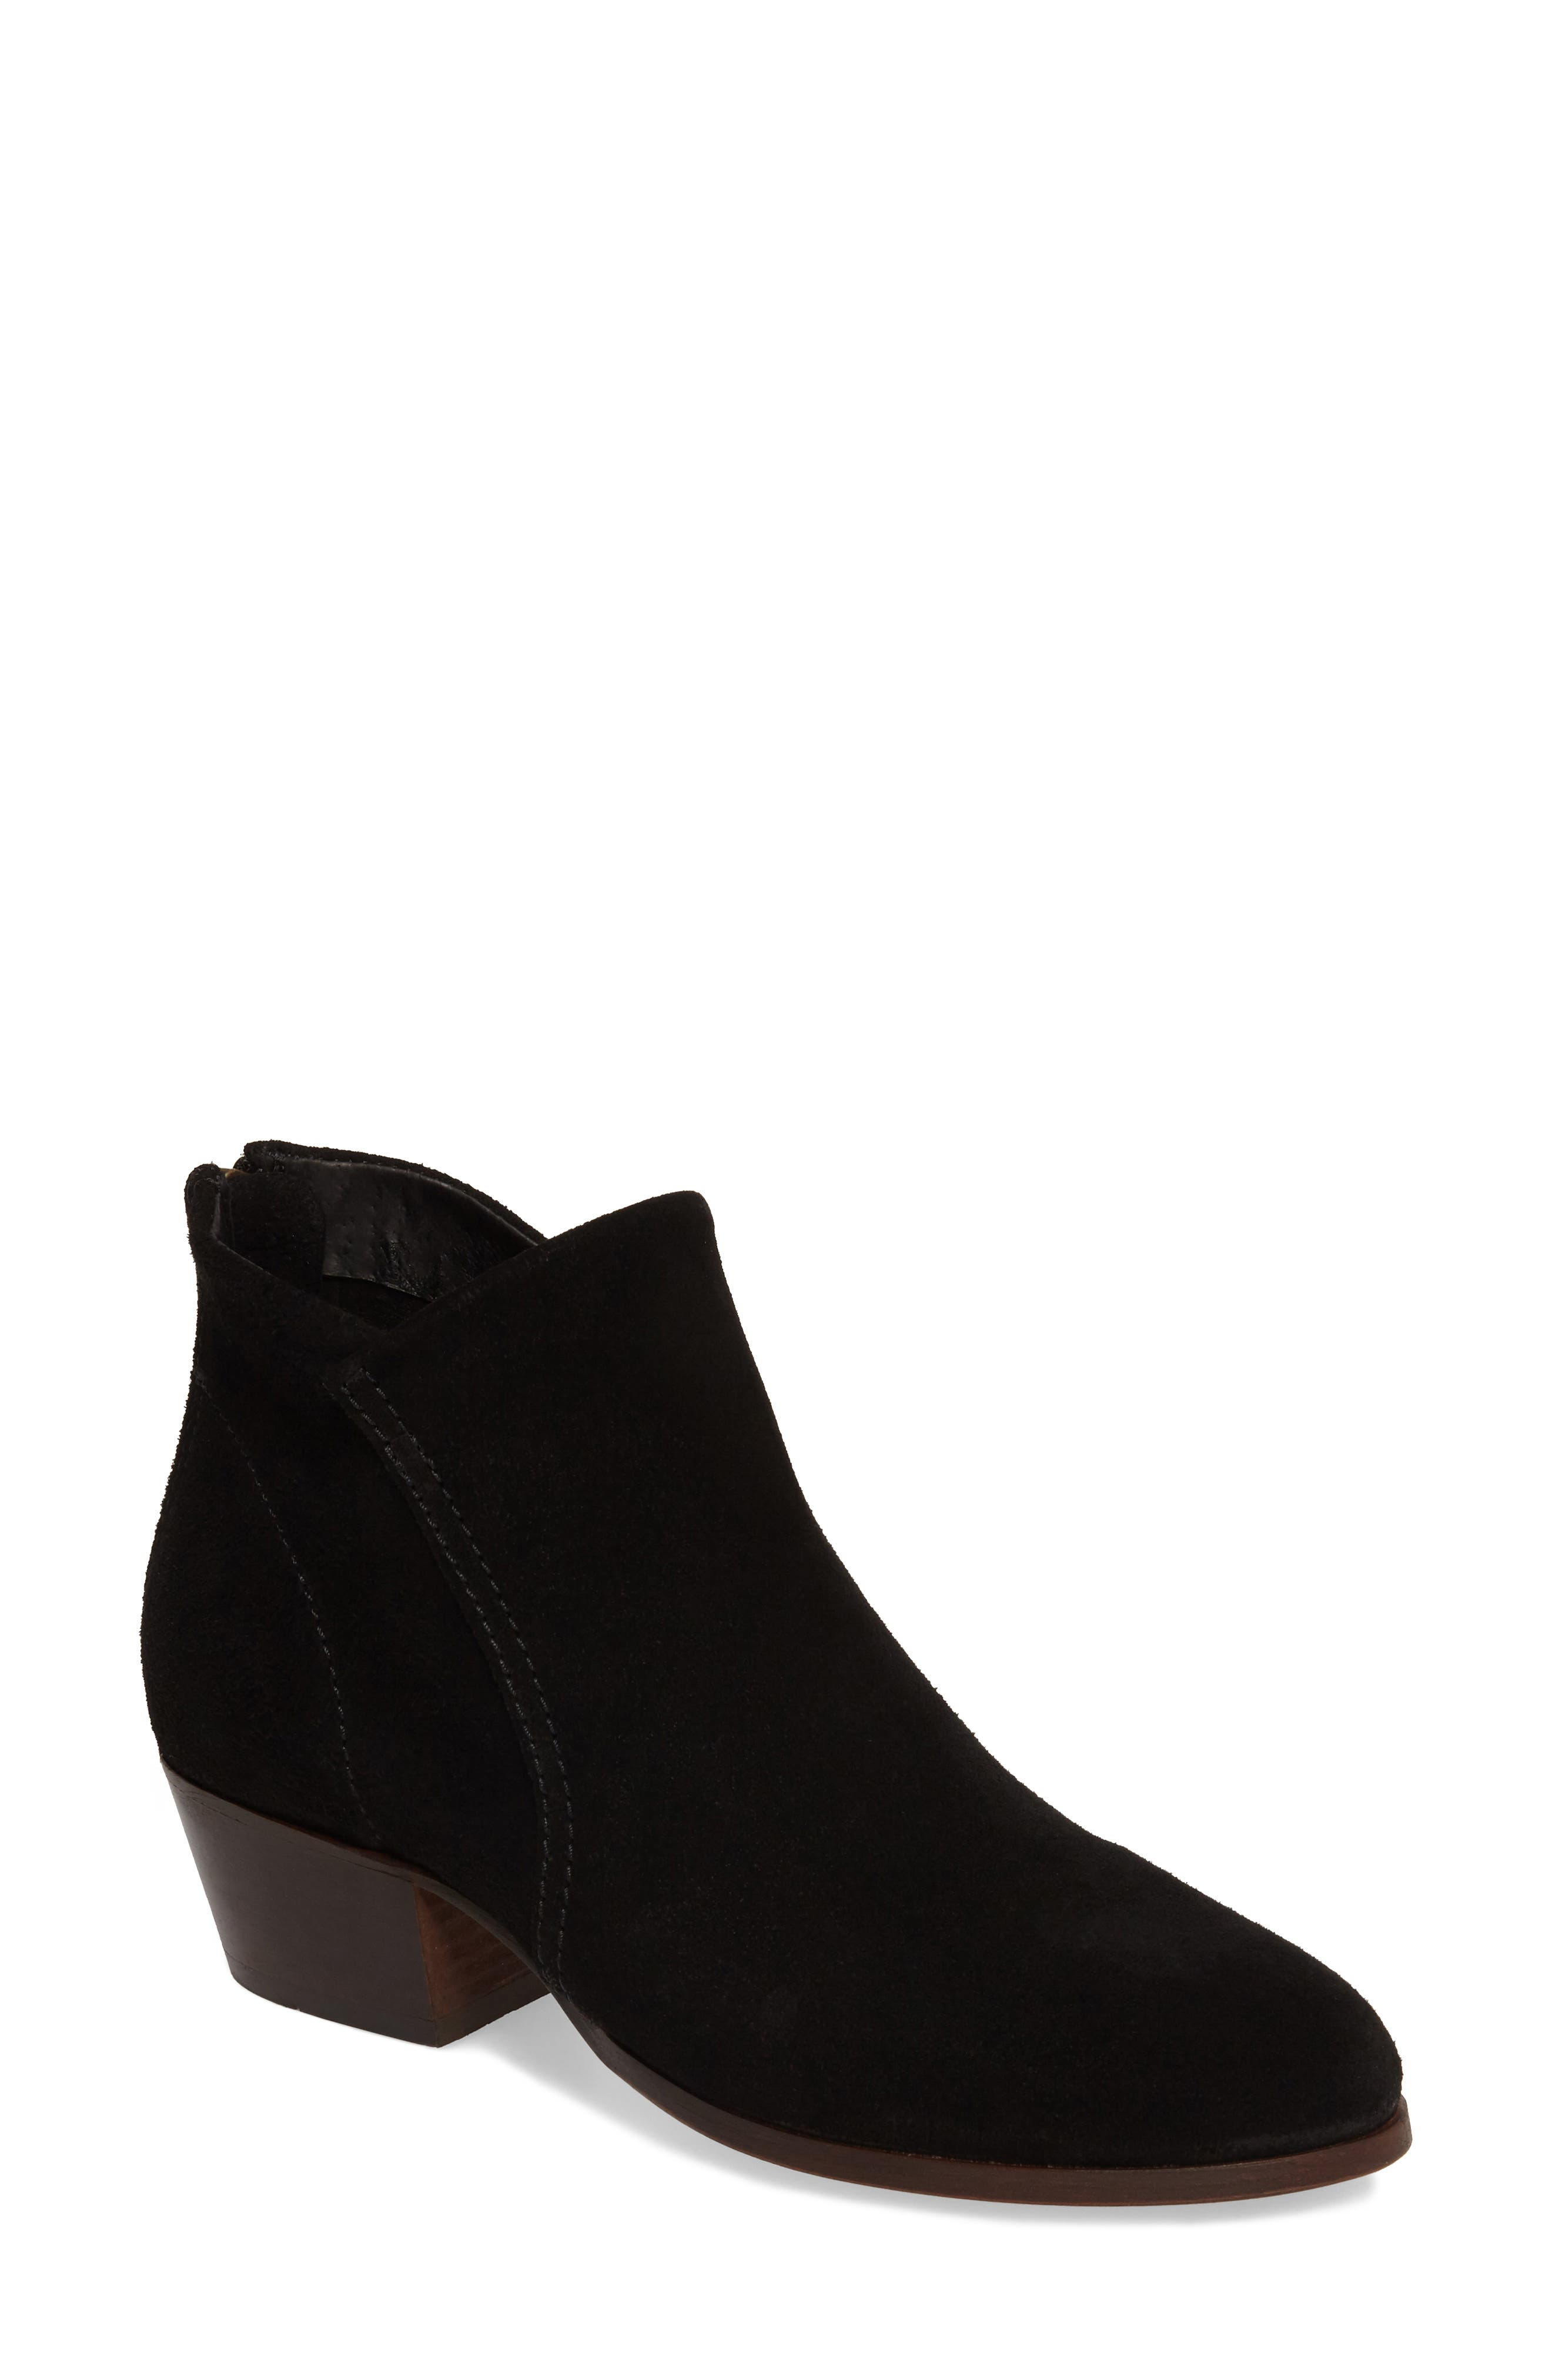 H BY HUDSON Hudson London Apisi Bootie